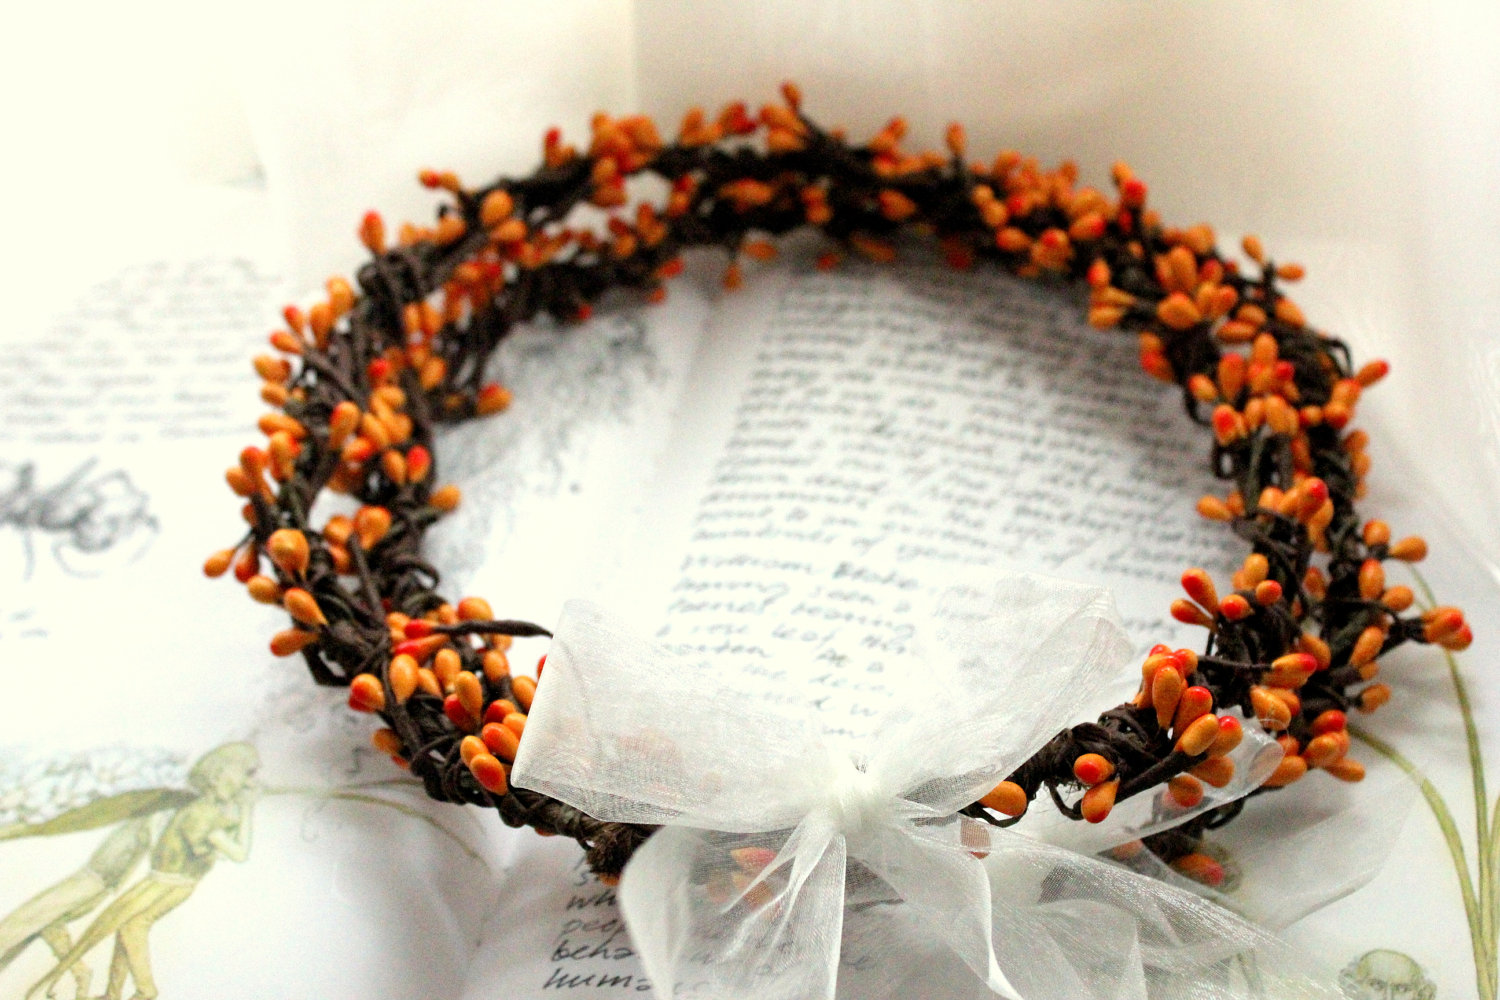 bohemian wedding crowns stefana wedding crowns Bohemian style wedding crowns with orange berries Etsy com